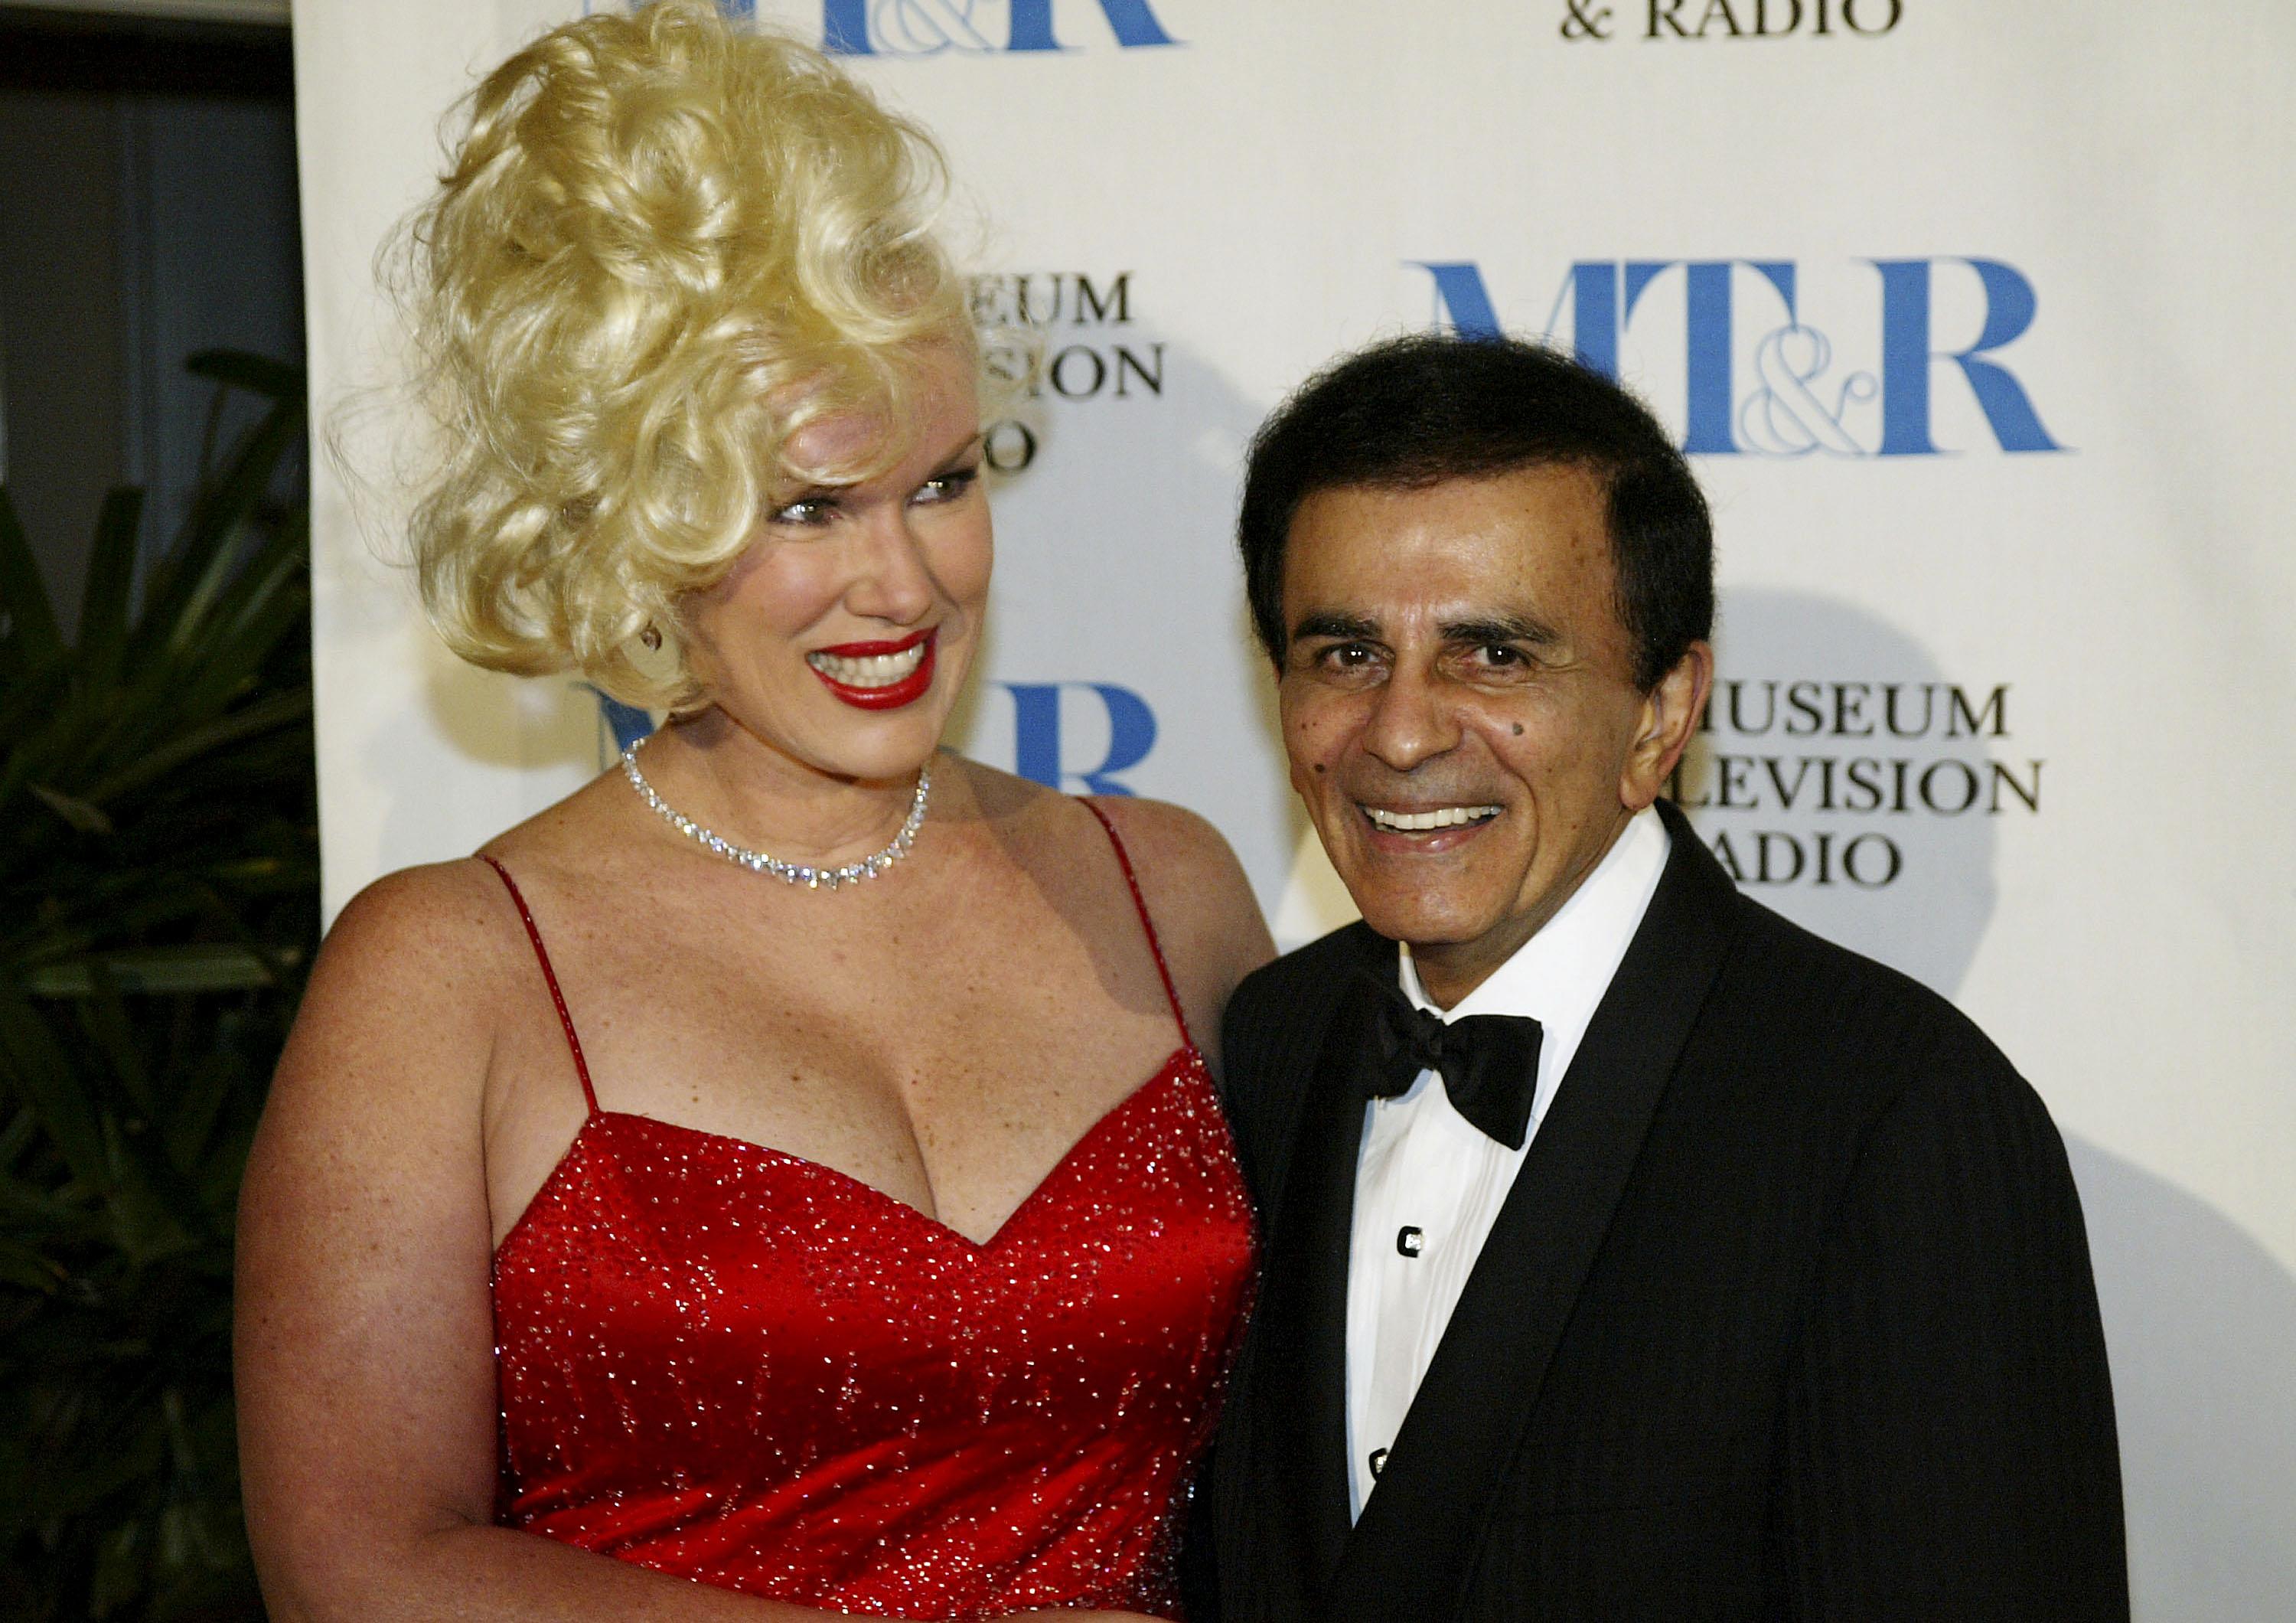 Jean and Casey Kasem pose before the Museum of Television & Radio's Annual Los Angeles Gala on November 10, 2003 at the Beverly Hills Hotel in Beverly Hills, California.